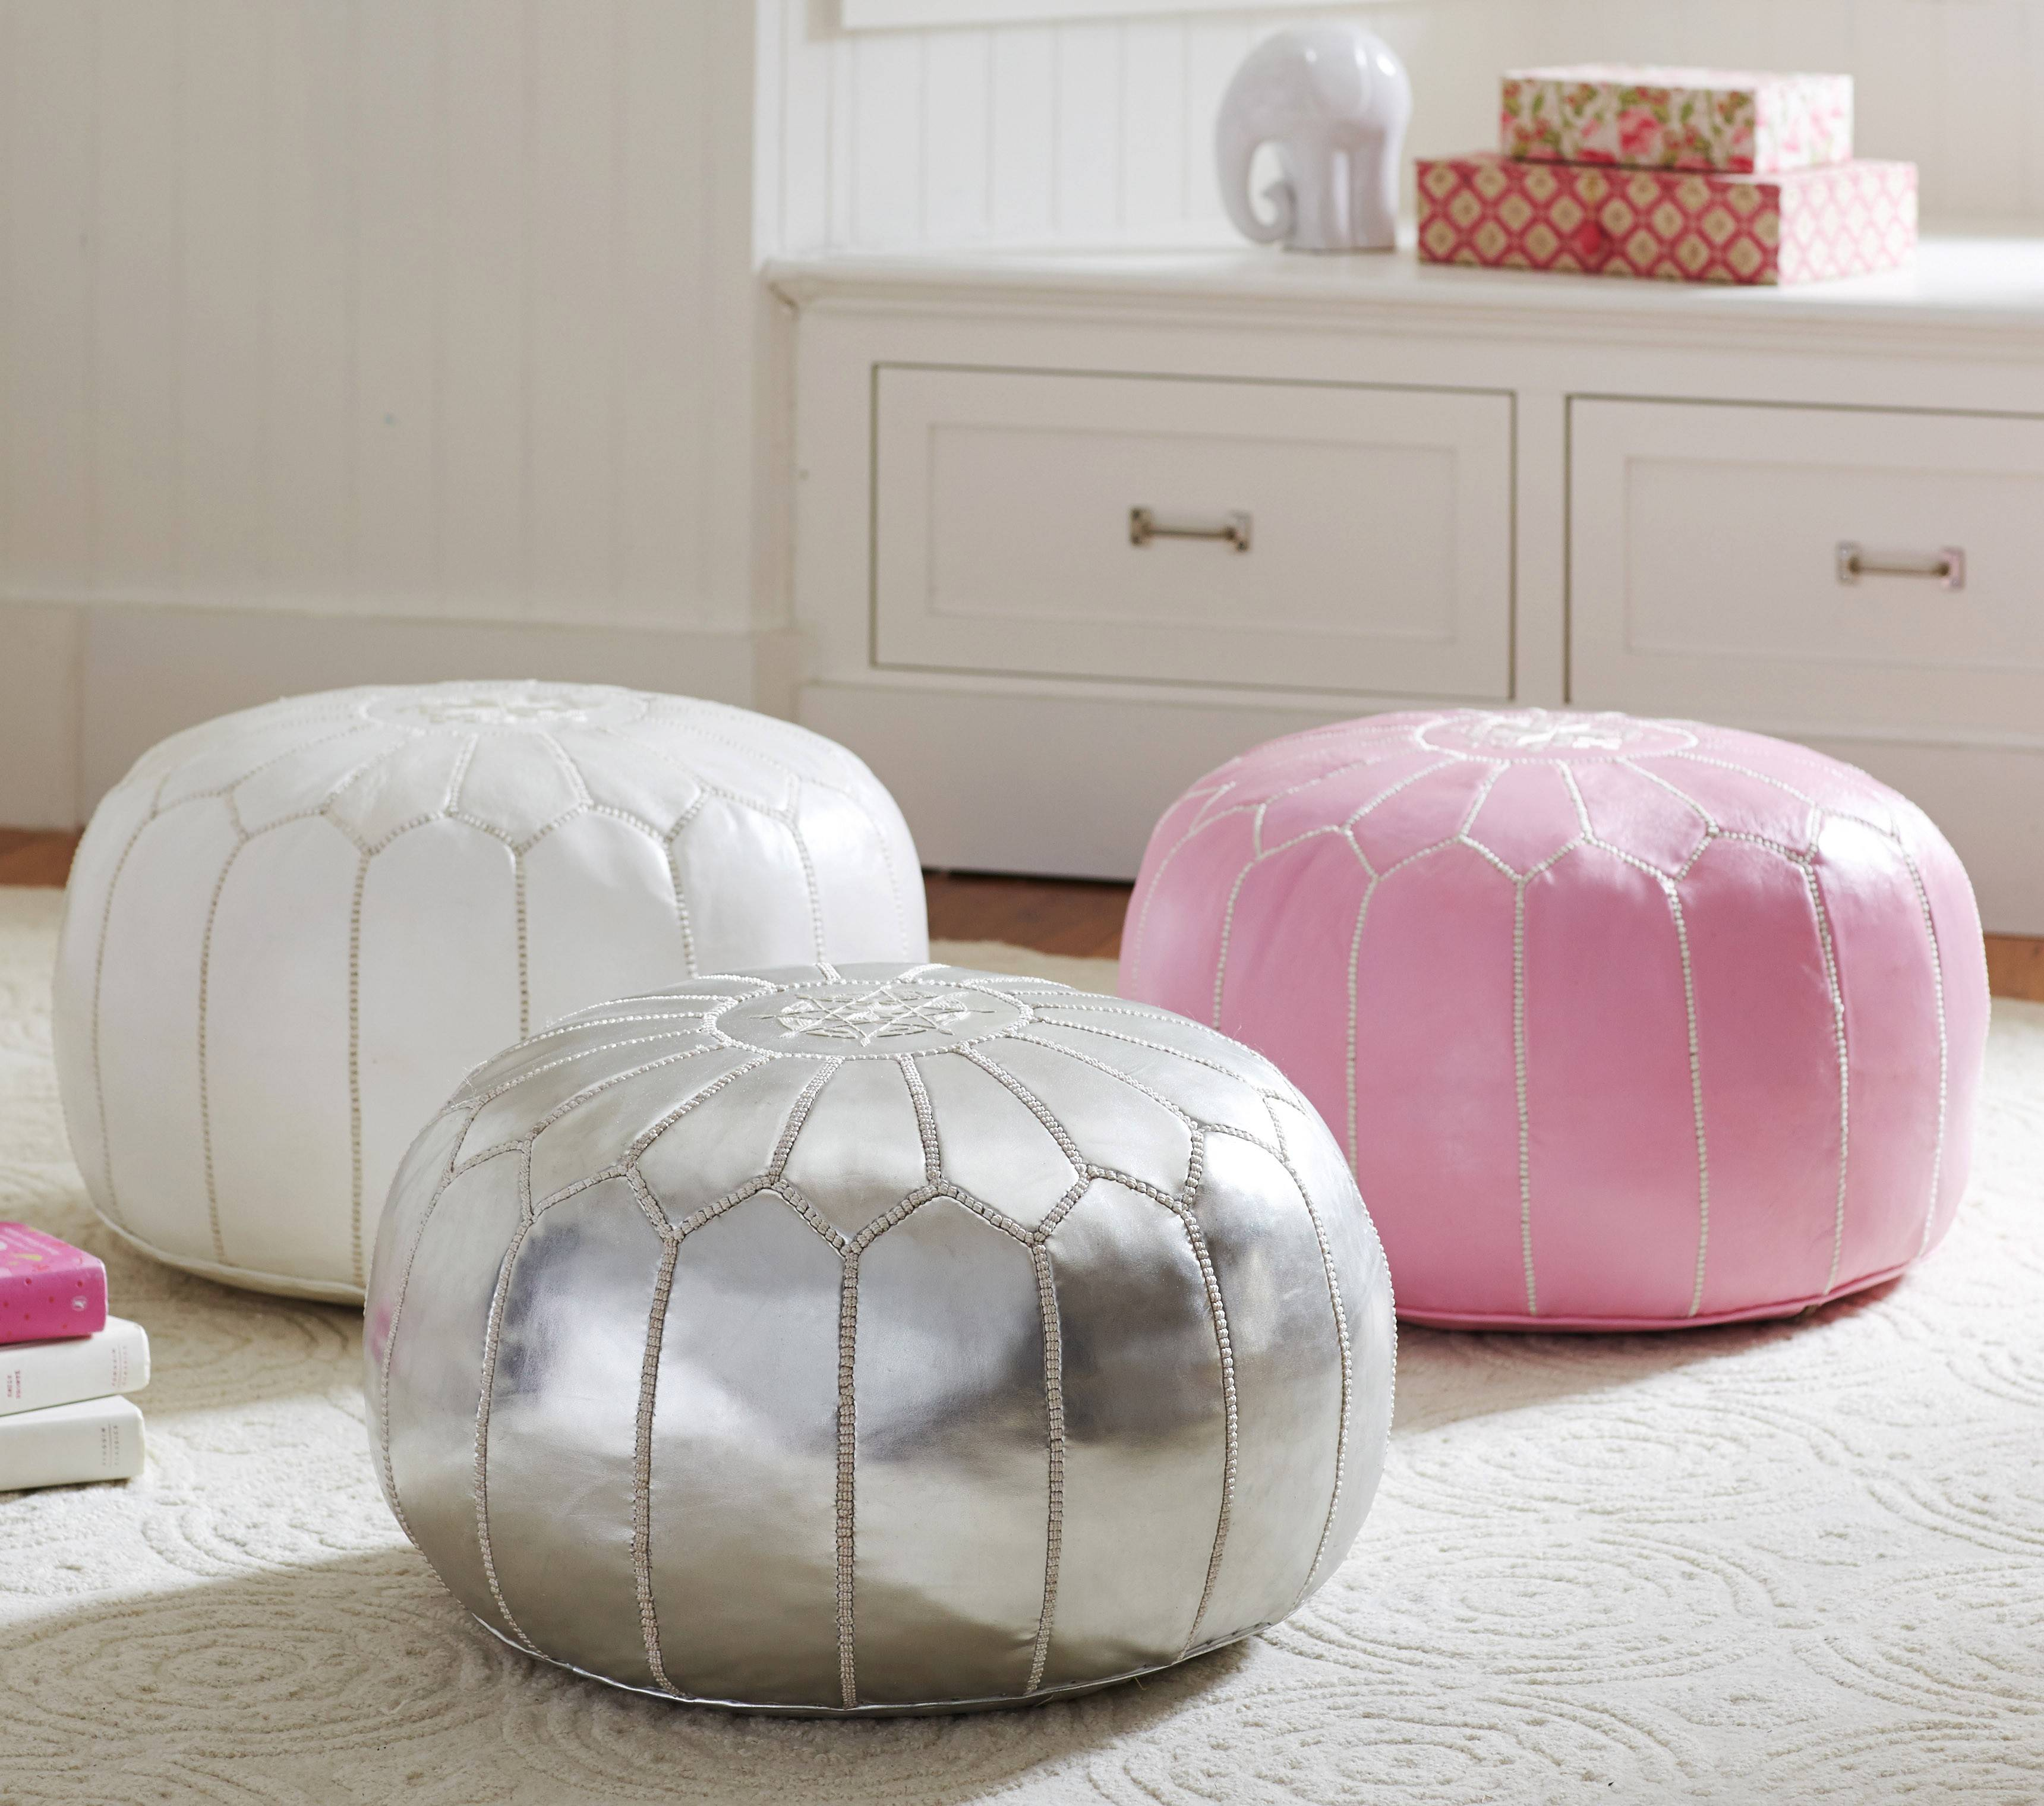 Moroccan floor poufs. Adding in a few pink accessories freshens a great room or living room for spring. A pink pouf is a practical piece with flair.